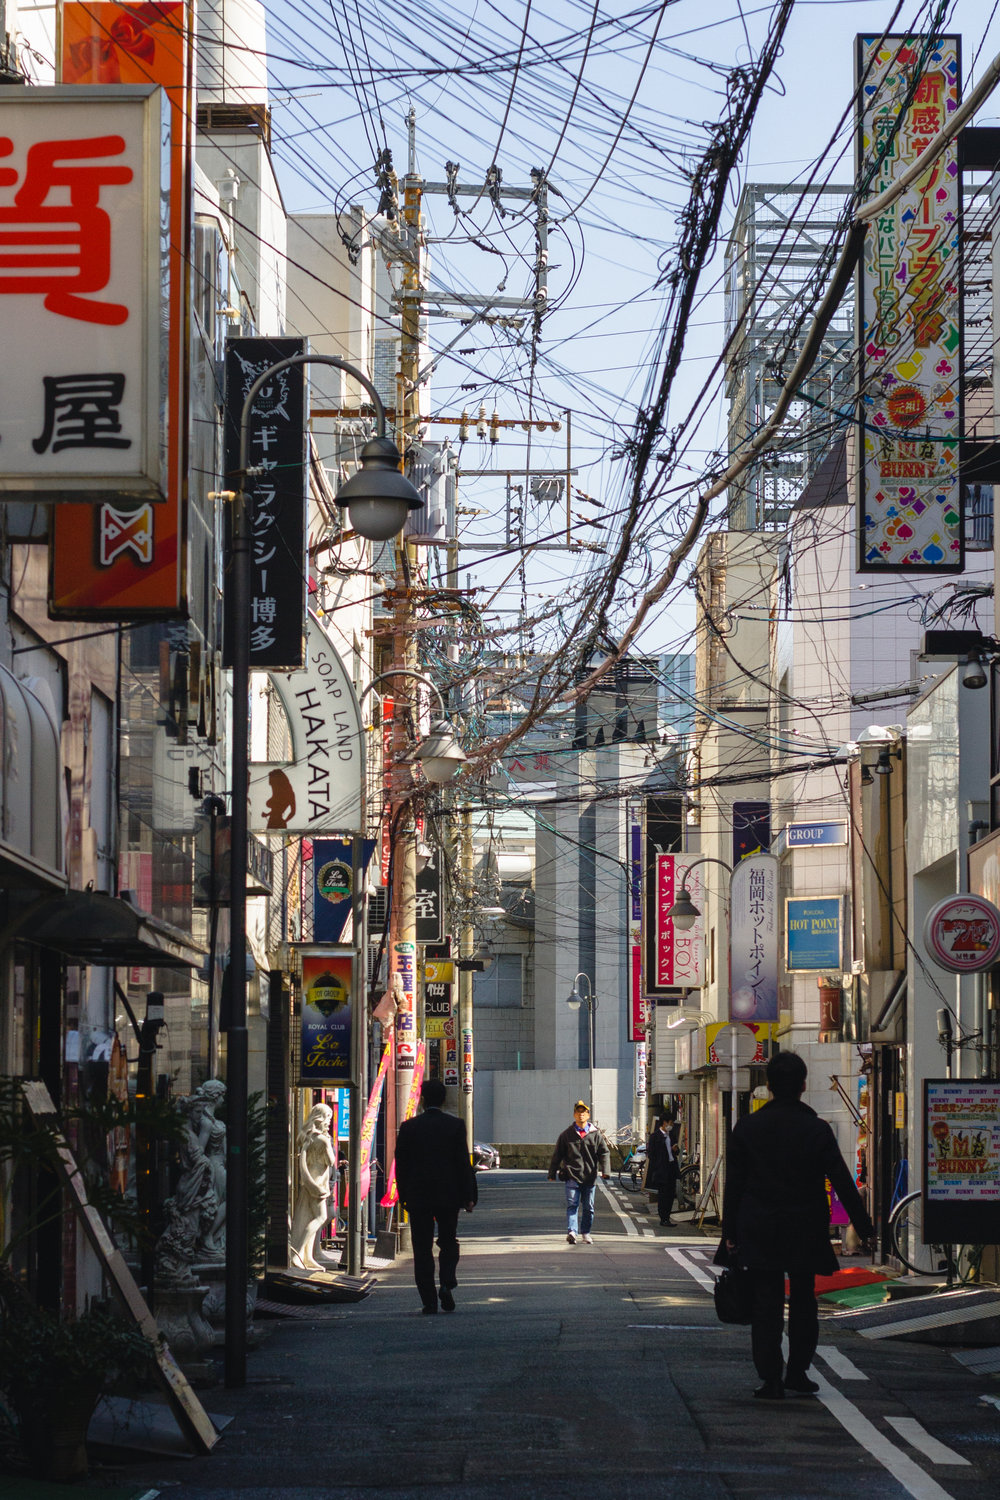 Alleyways | Hakata Neighborhood, Fukuoka